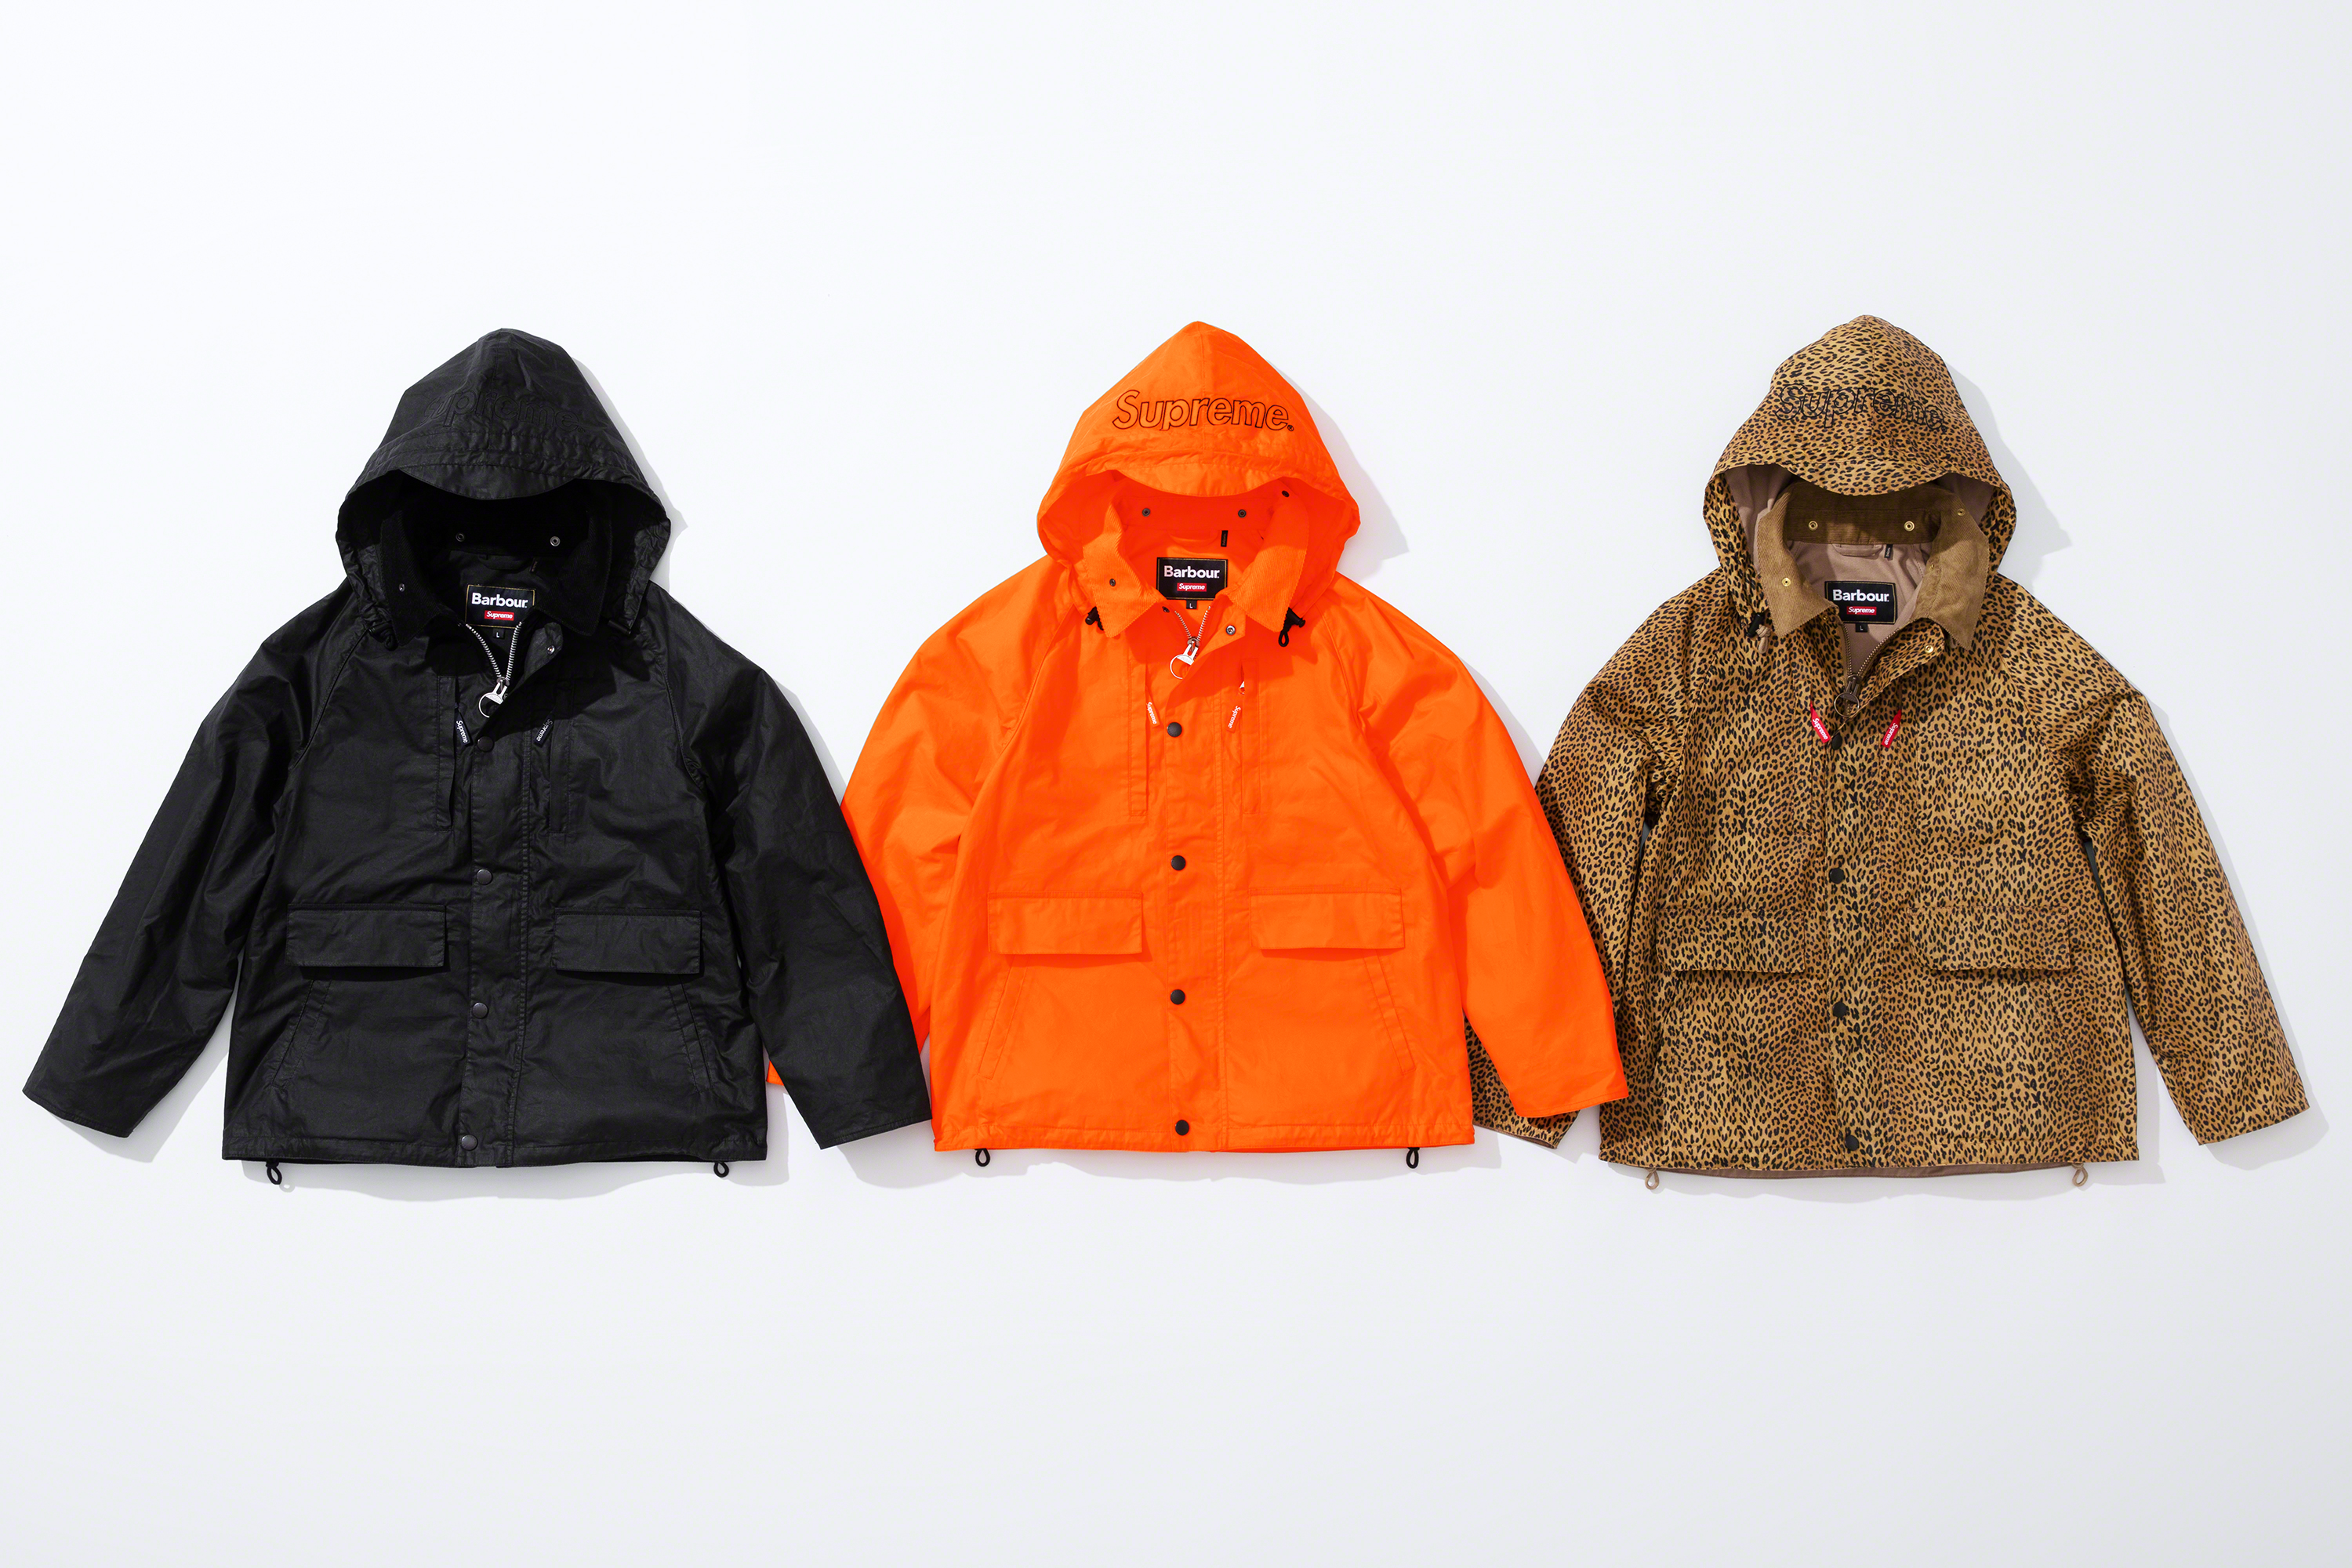 Jackets from the new Barbour collaboration with Supreme